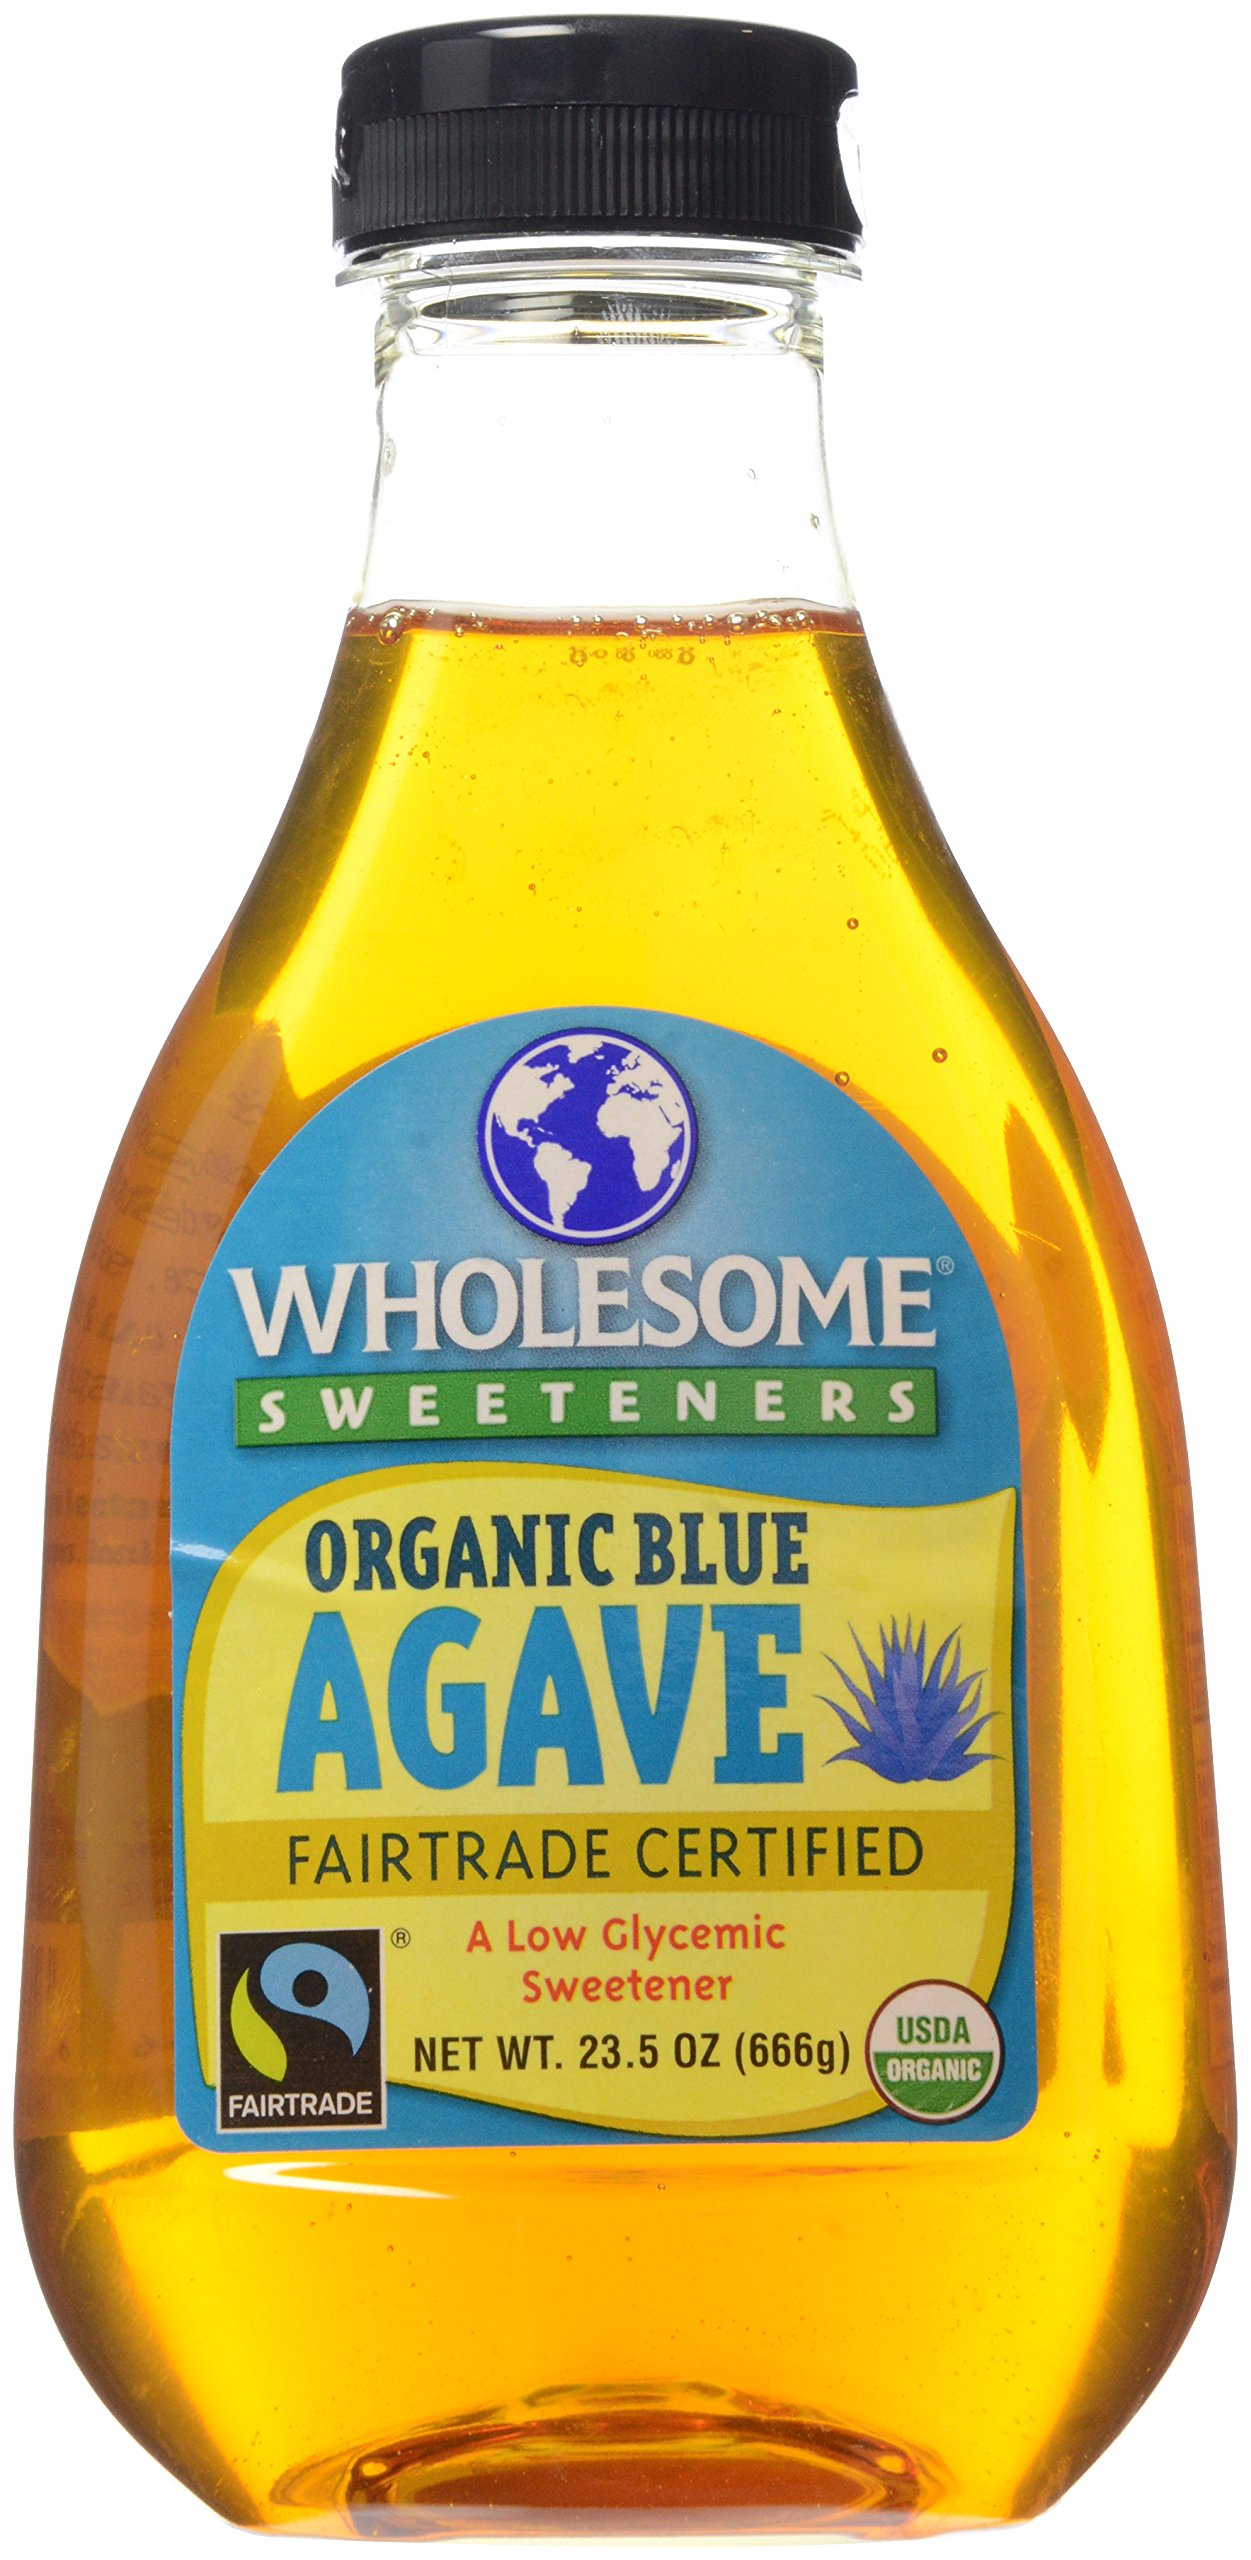 Wholesome Sweeteners, Blue Agave, Light, Organic, 23.5 oz